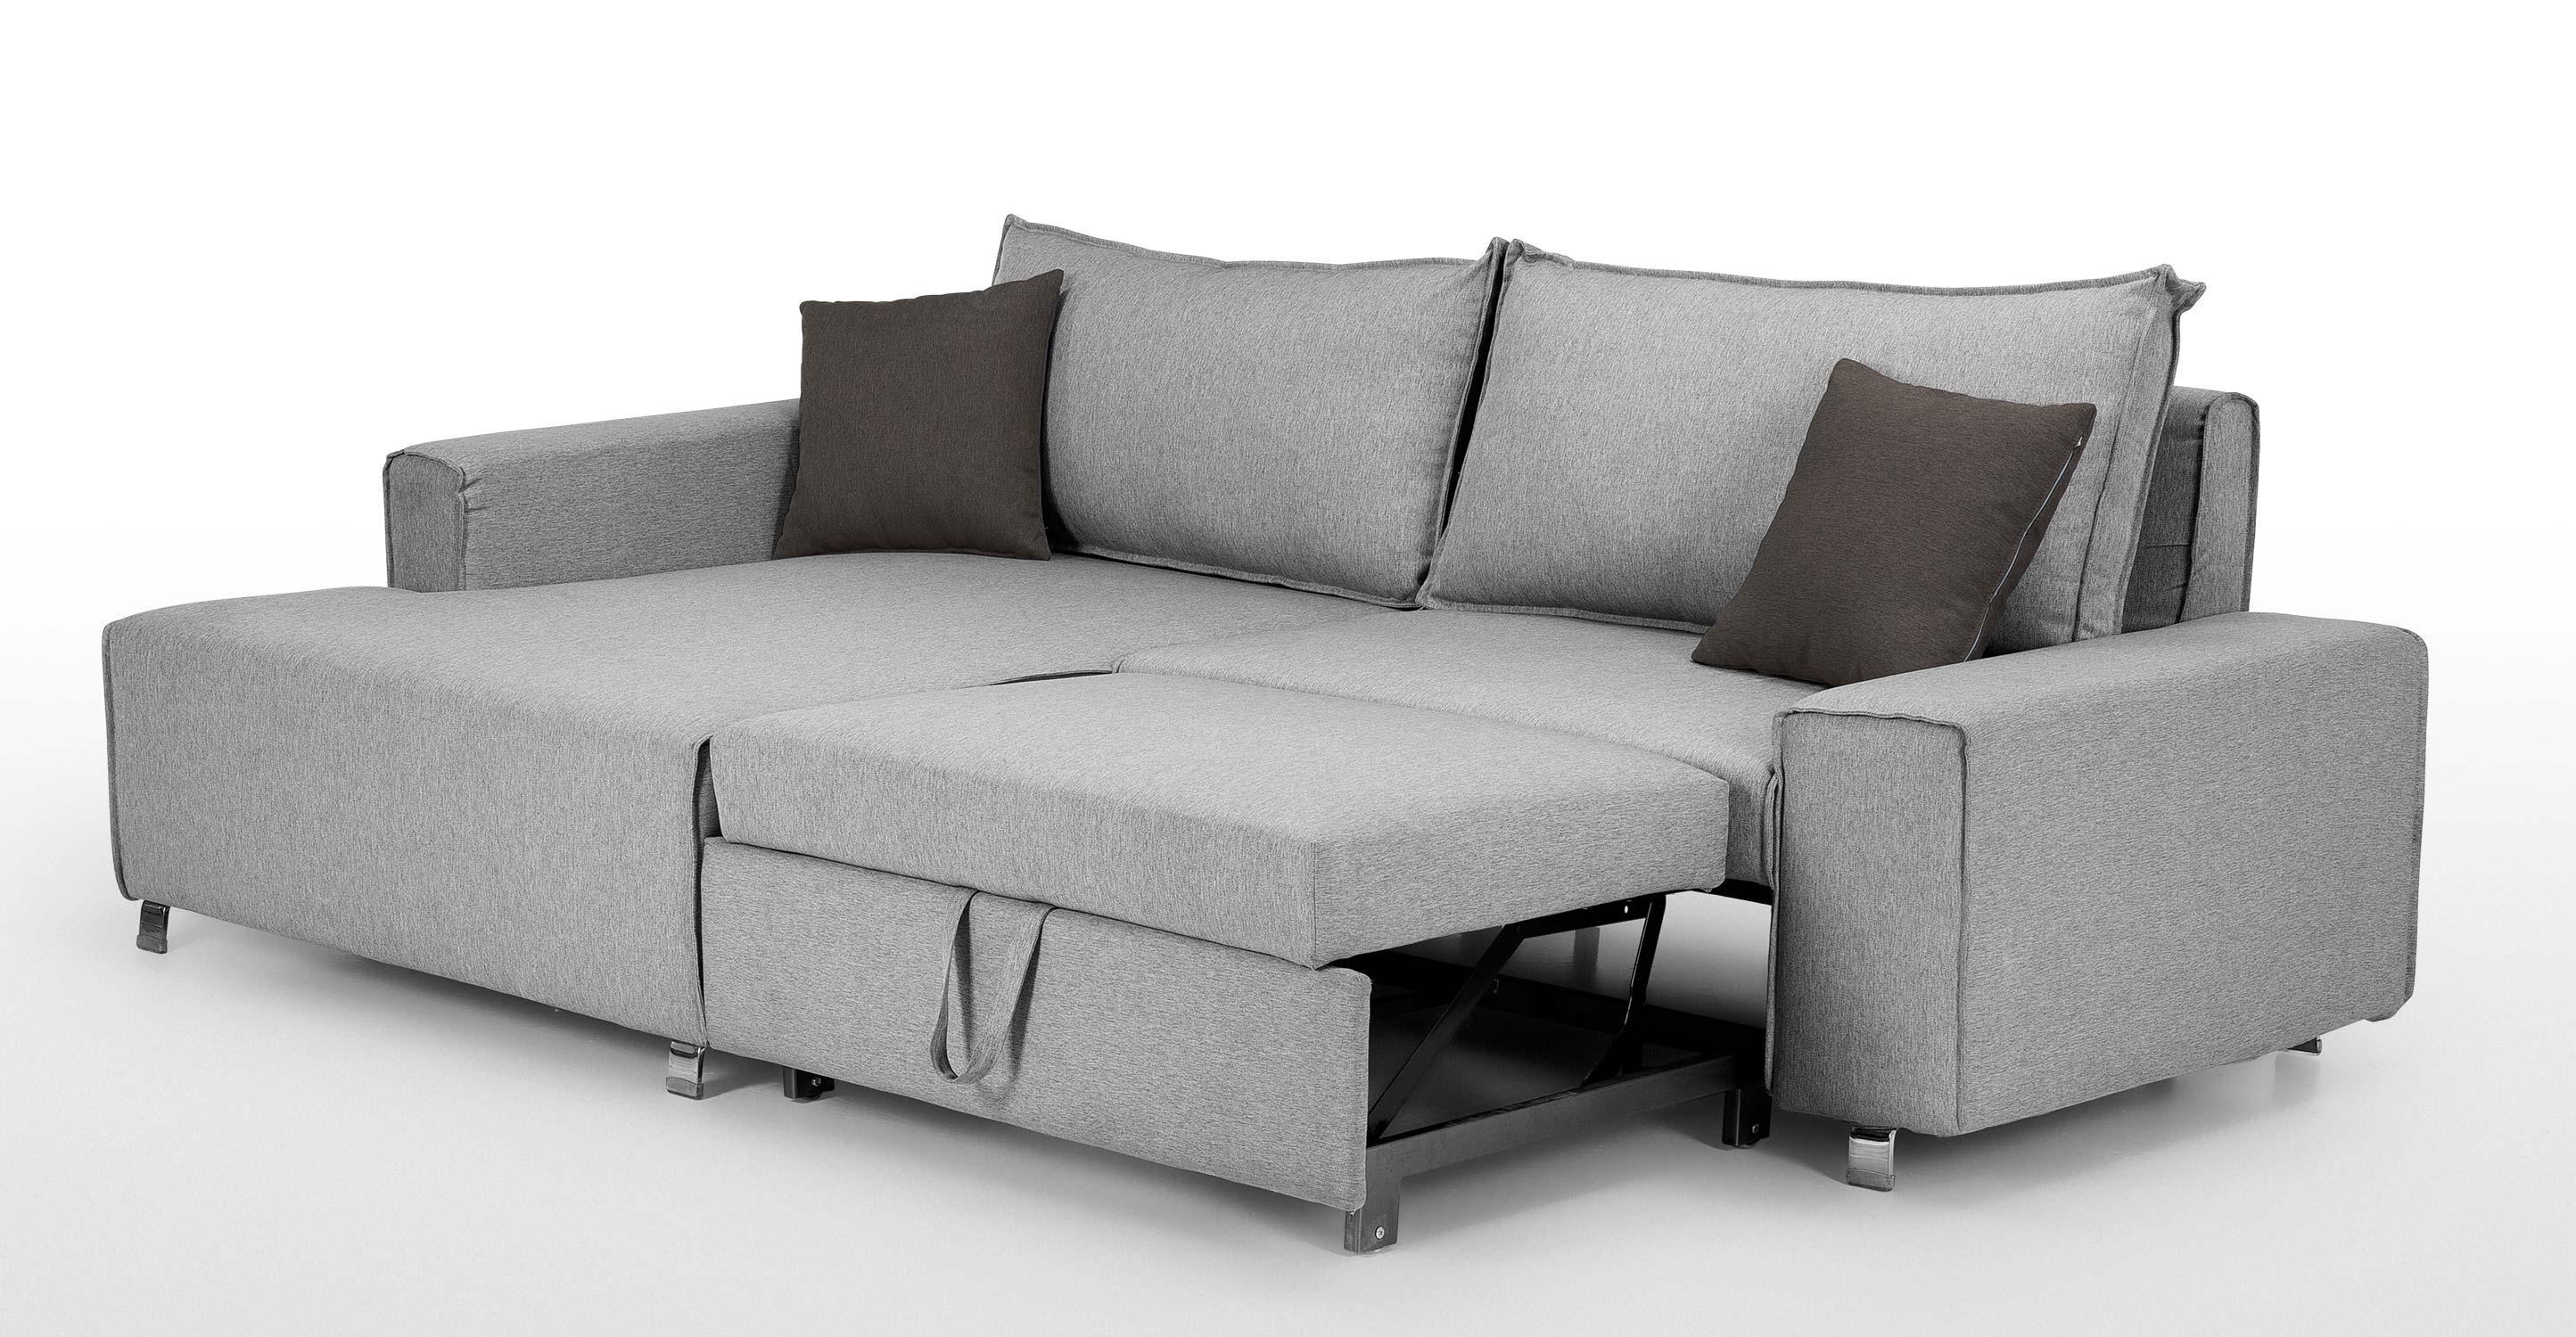 Light Grey Sofa Bed | Tehranmix Decoration With Regard To Small Grey Sofas (Image 7 of 20)